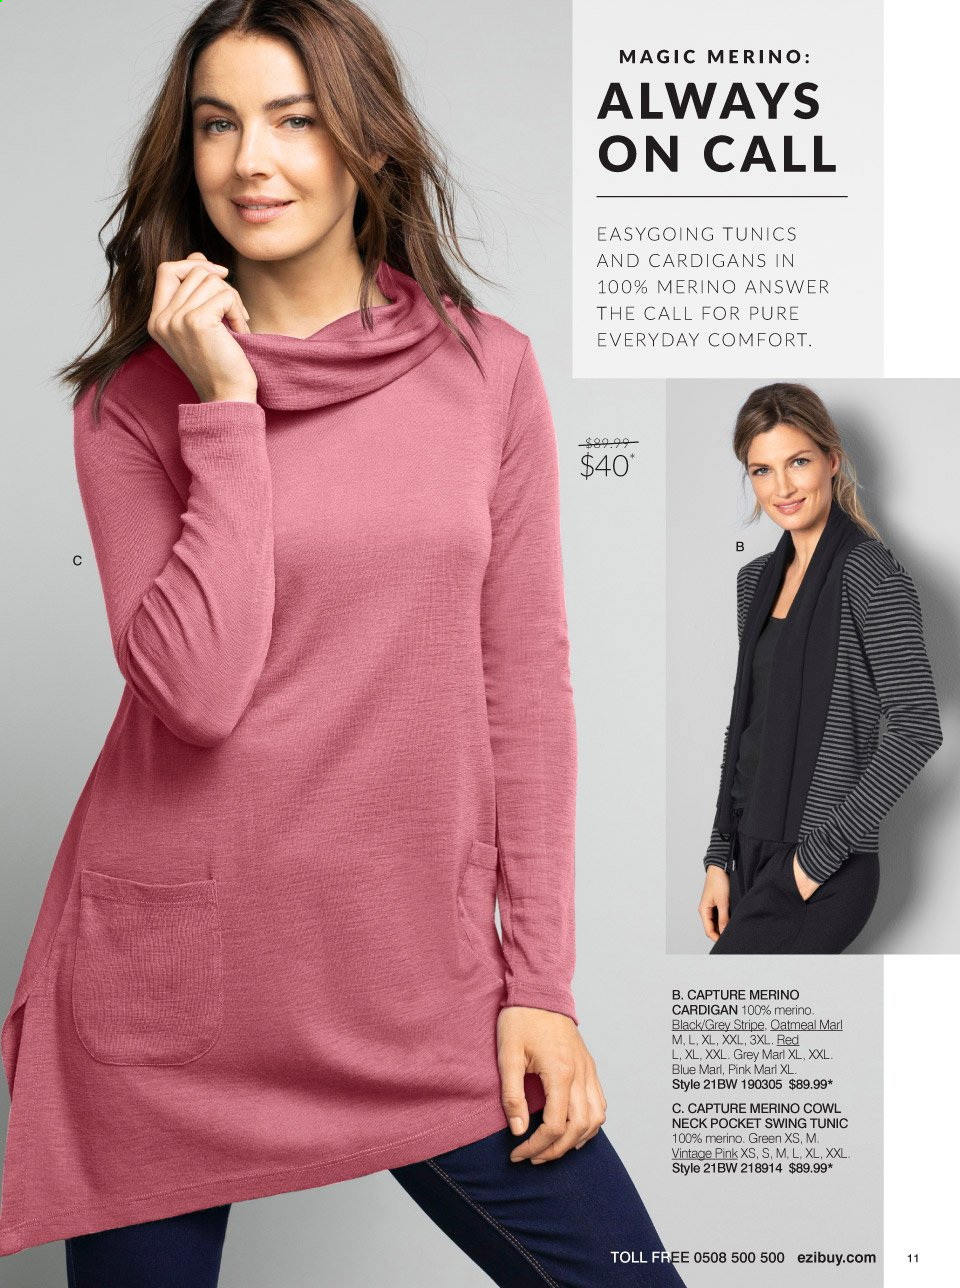 Ezibuy mailer - 16.03.2021 - 11.04.2021 - Sales products - cardigan. Page 11.